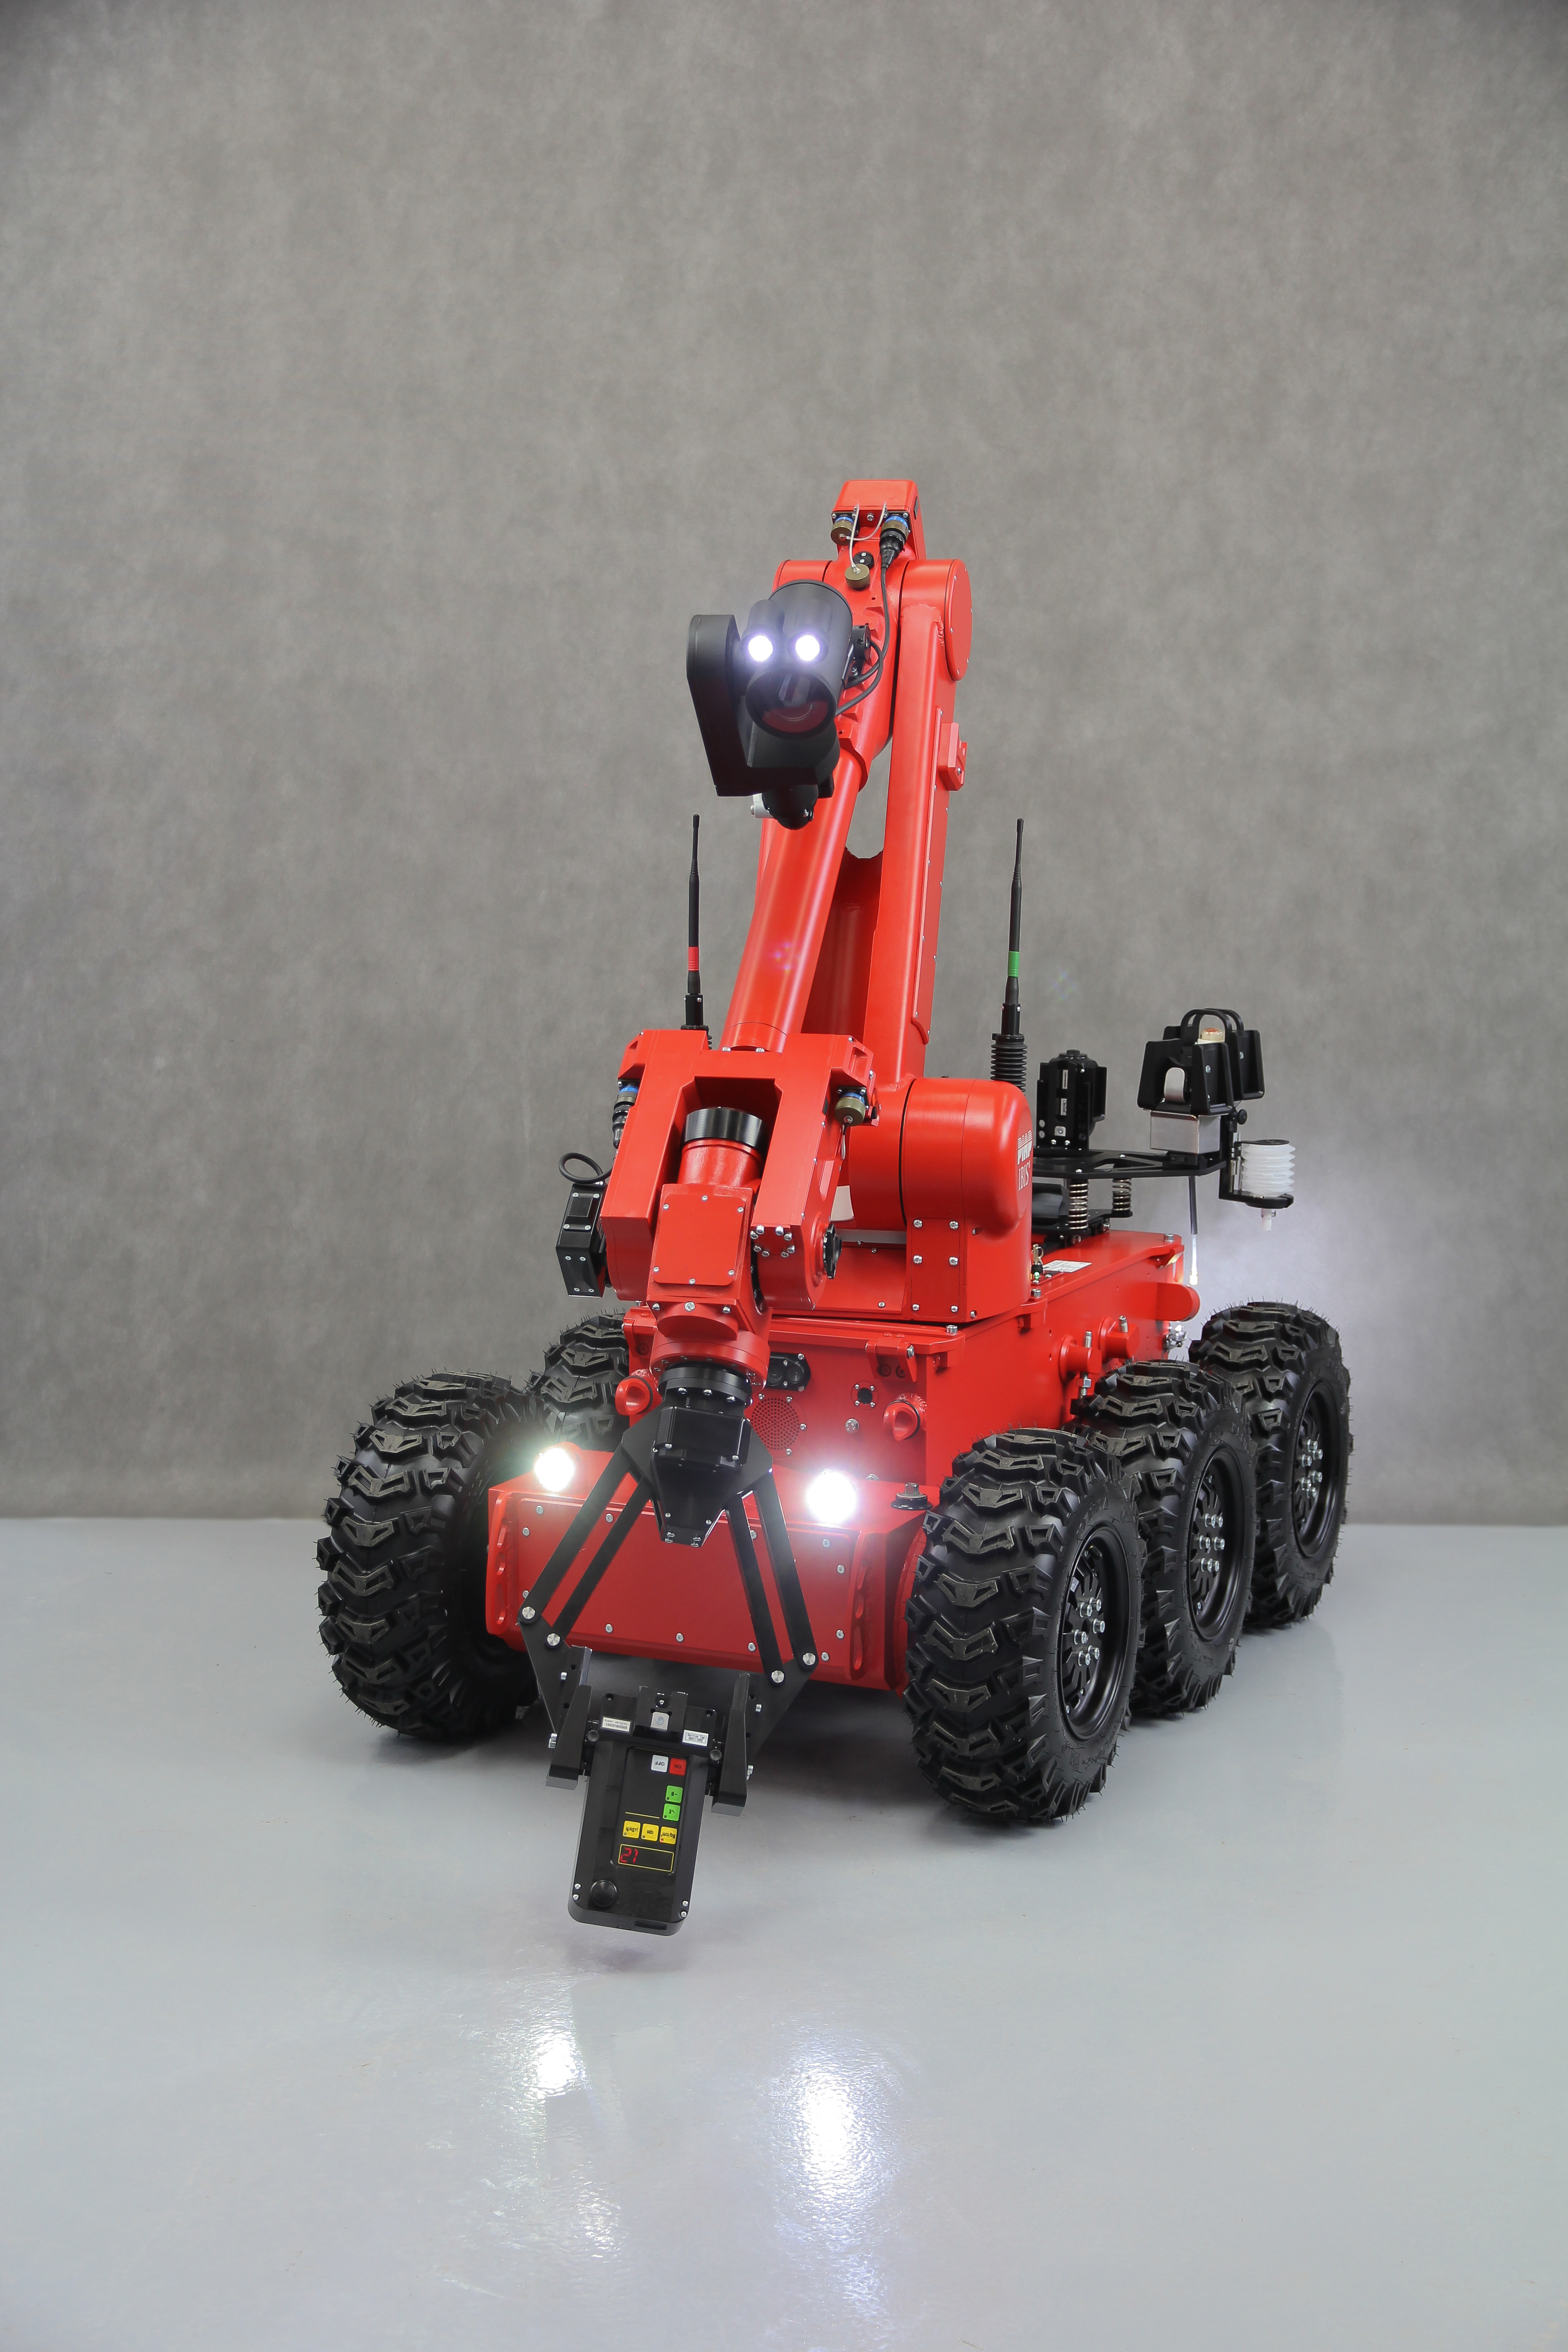 Ibis 174 Is A Robot Designed For Pyrotechnic Operations And